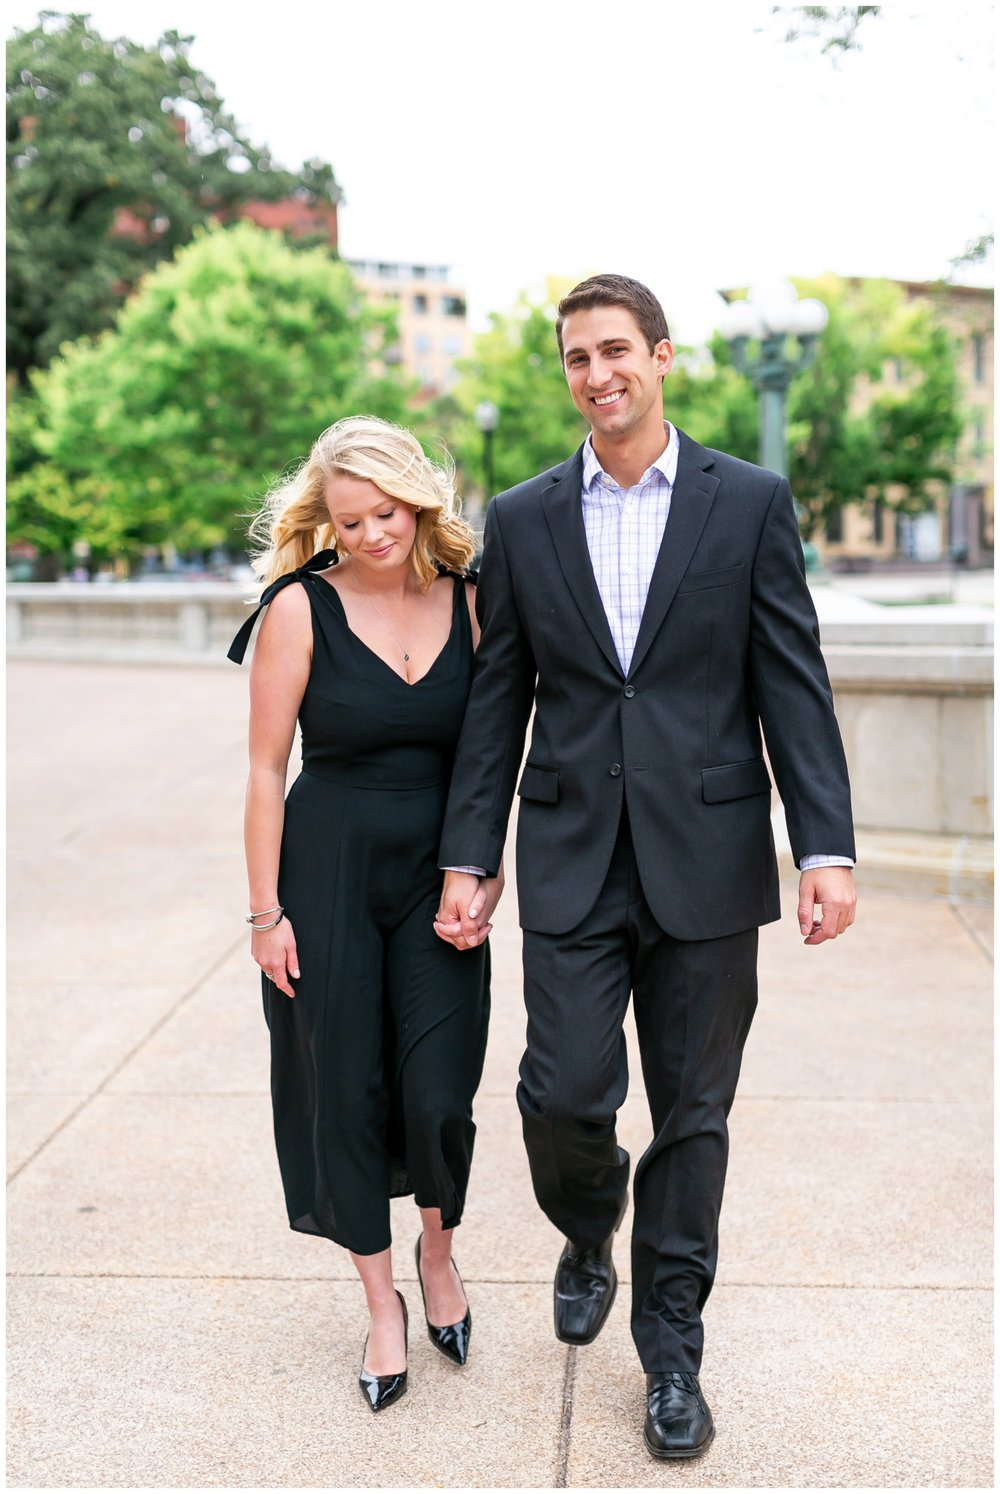 Downtown_madison_wisconsin_engagement_session_1500.jpg